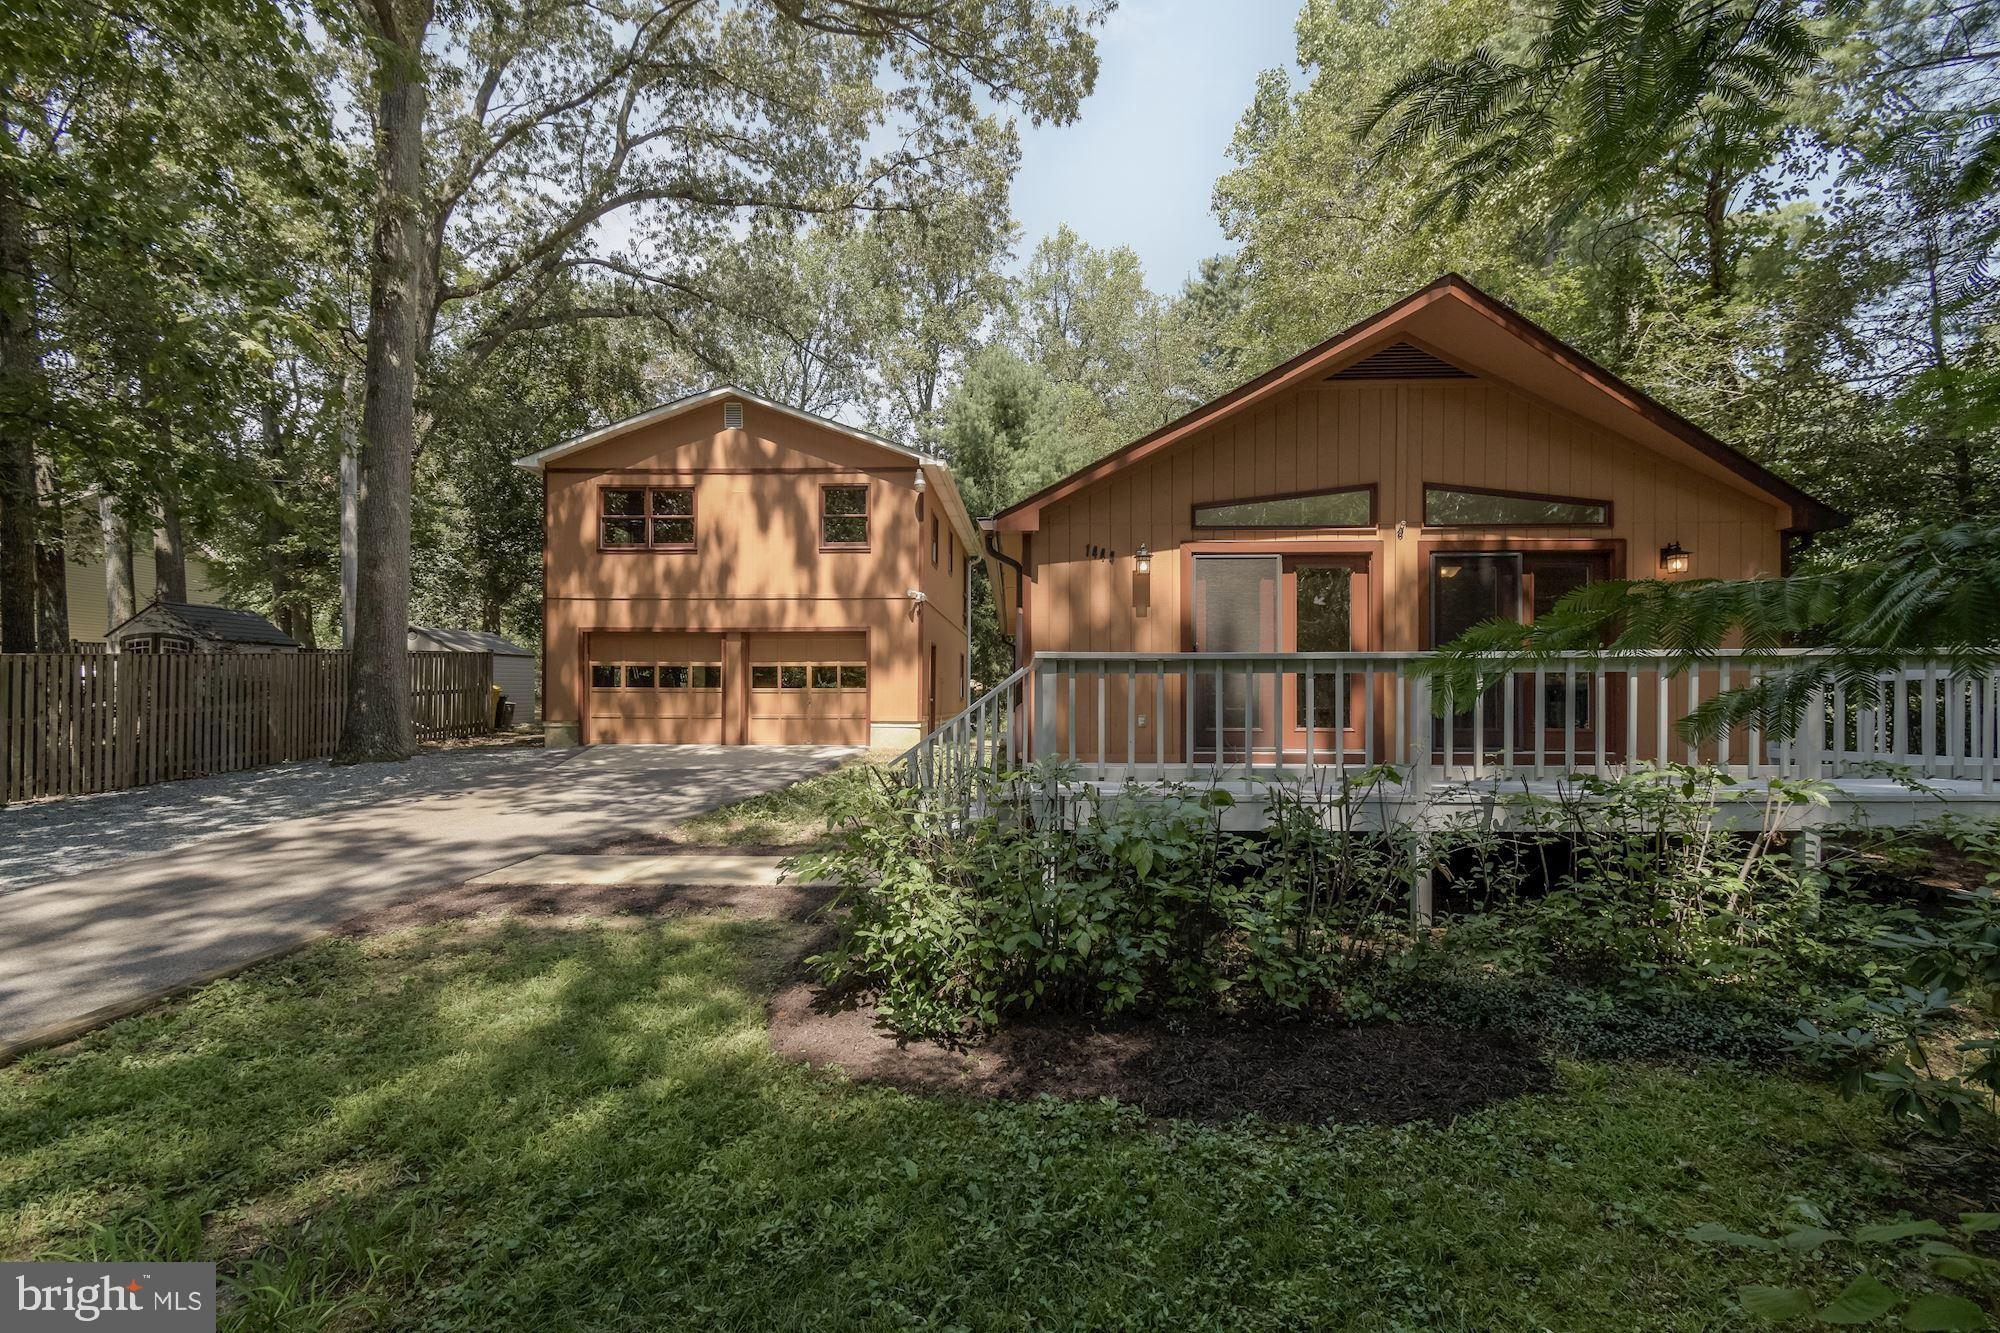 Beautifully renovated home with 3 bedrooms and 2 full baths, surrounded by shade trees. Expansive fr